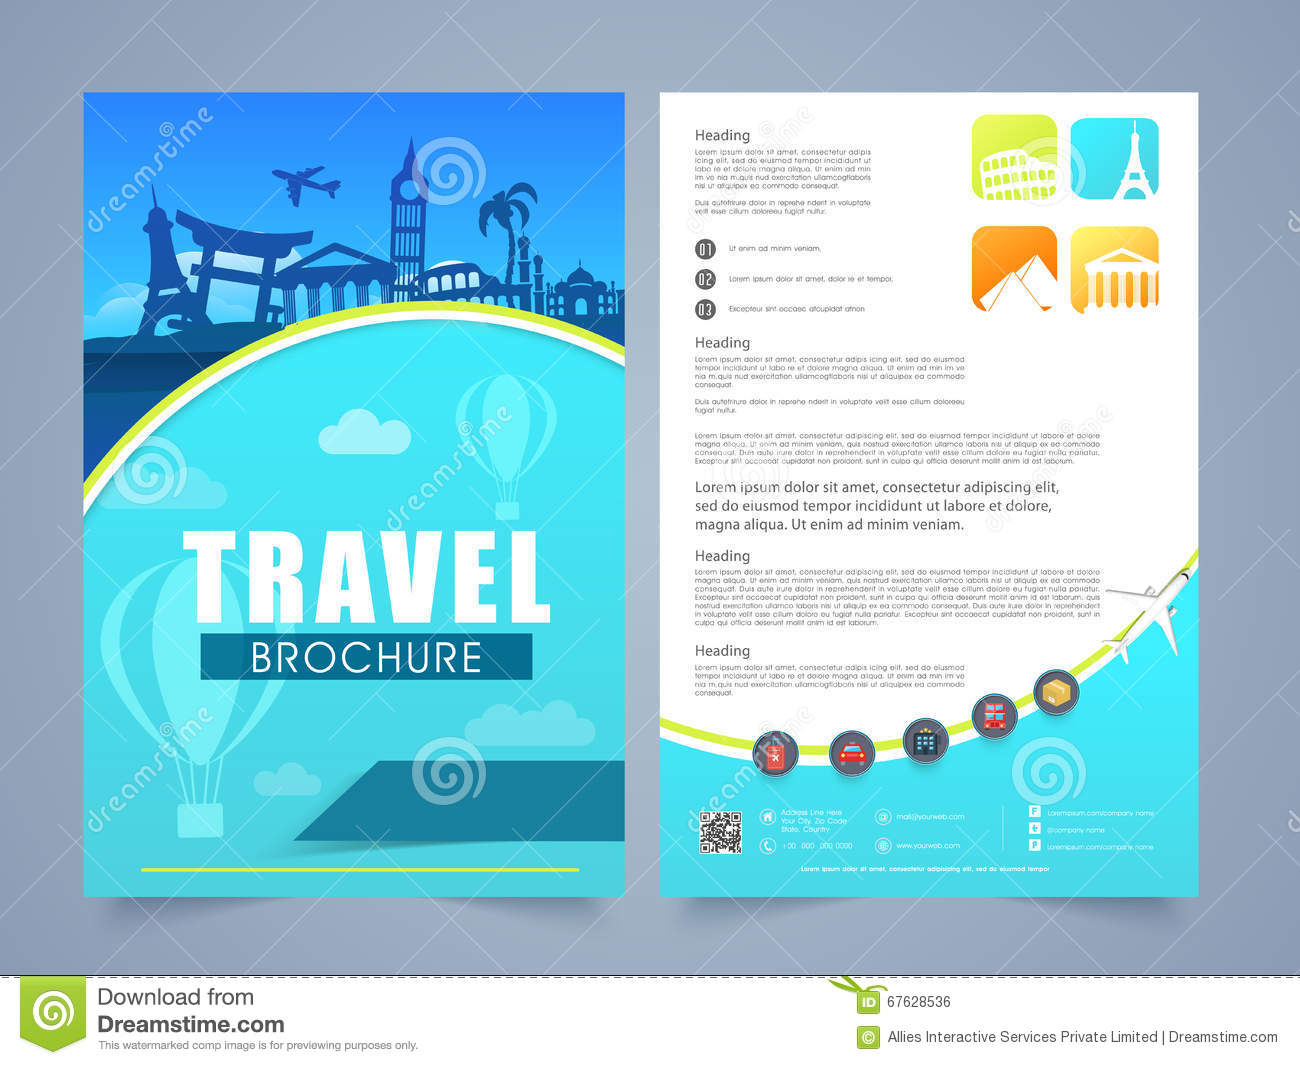 Tourism Brochure Template | Travel Brochure Template Or Flyer Design Stock Illustration